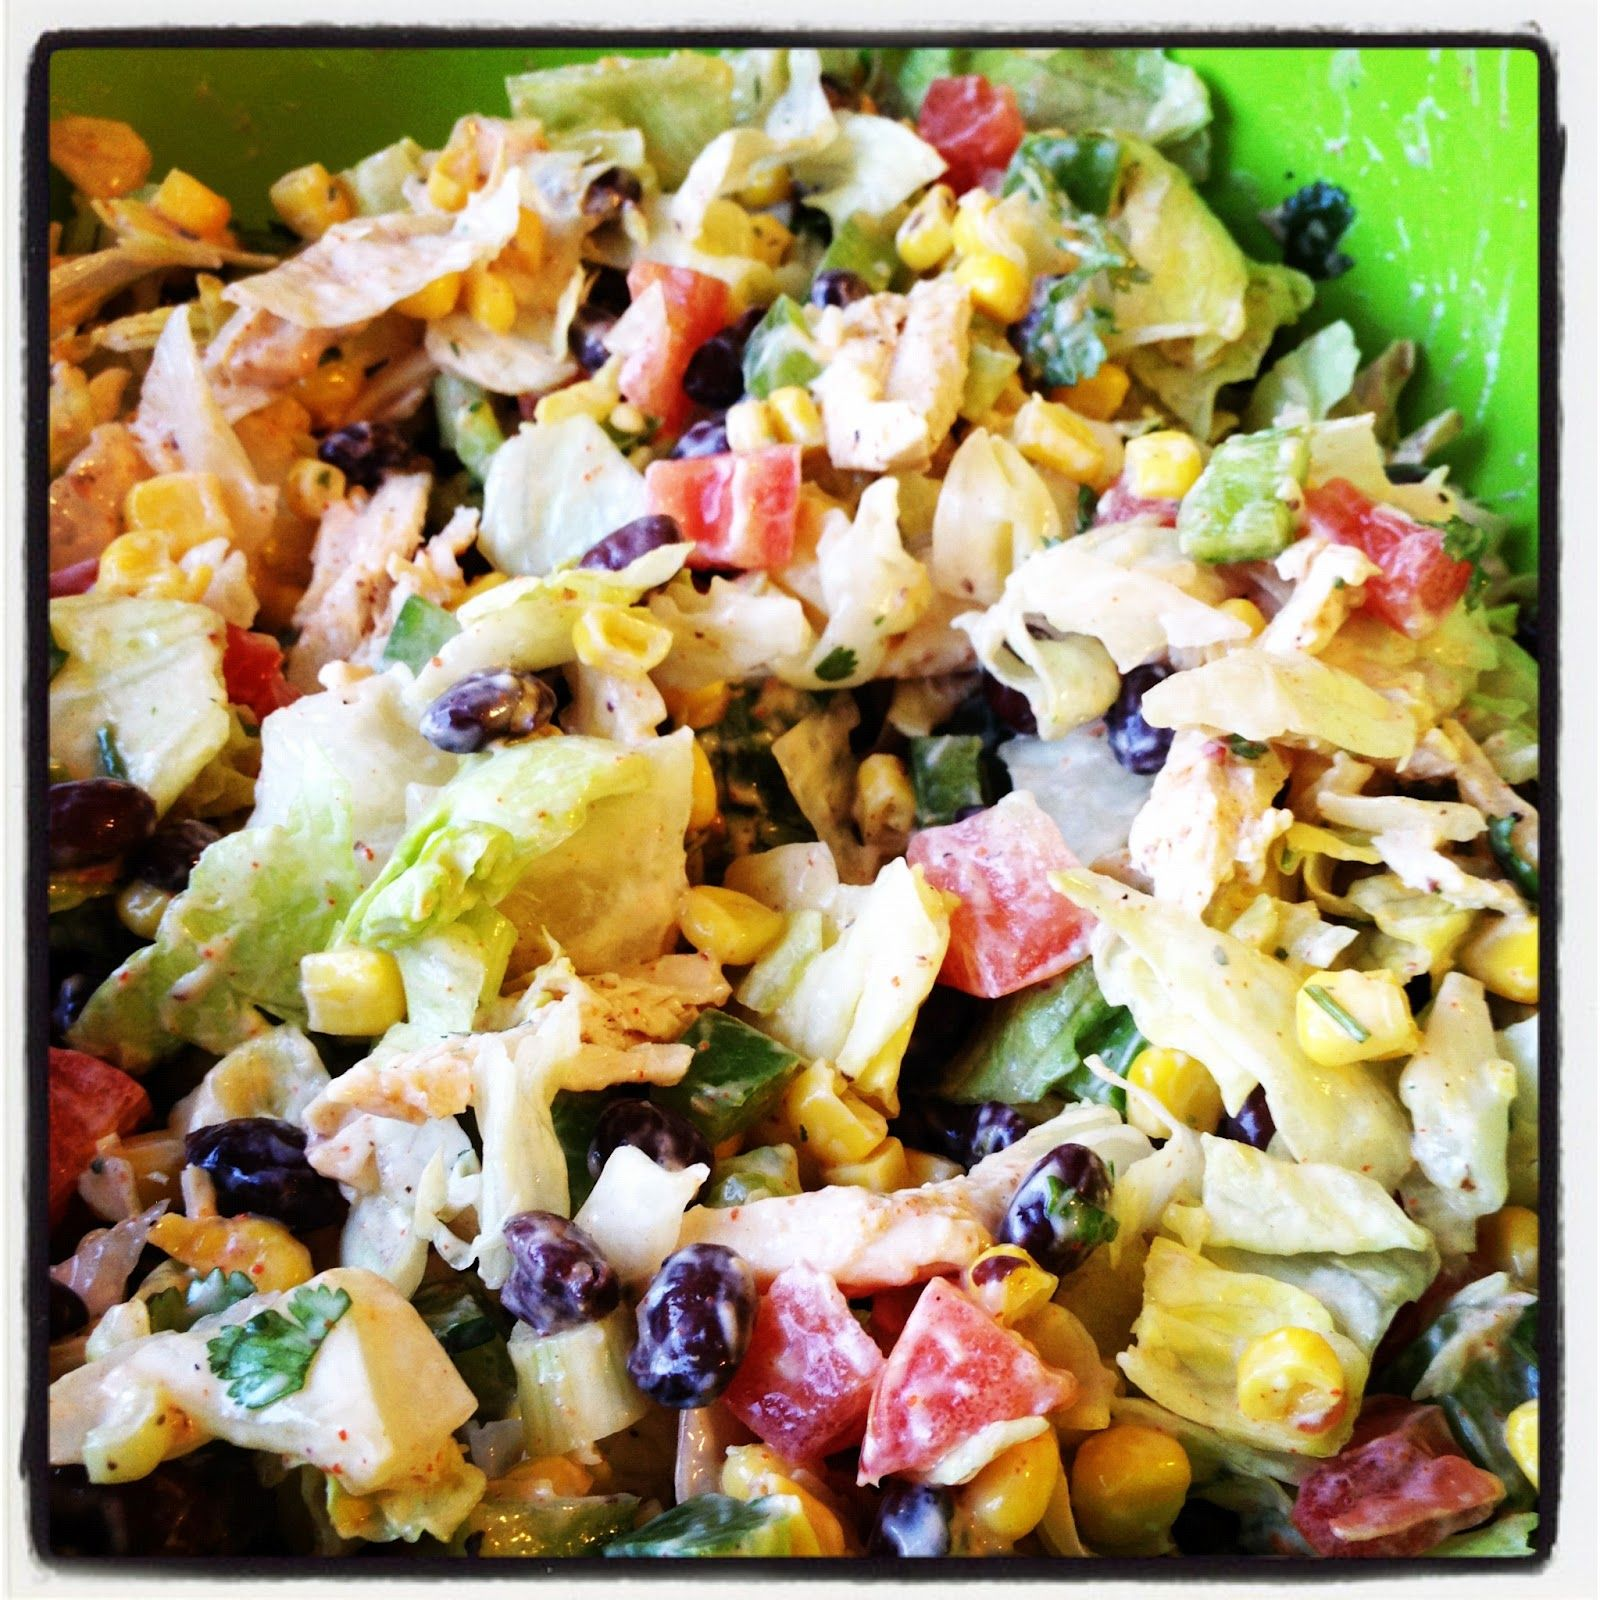 Chicken Taco salad that's HEALTHY! There's black beans, corn, green peppers, tomatoes, cilantro, green onions, chicken, avocado & tortilla chips. All tossed together with a taco ranch dressing made with Greek yogurt. - tastes a lot like chipotle, especially if you add rice